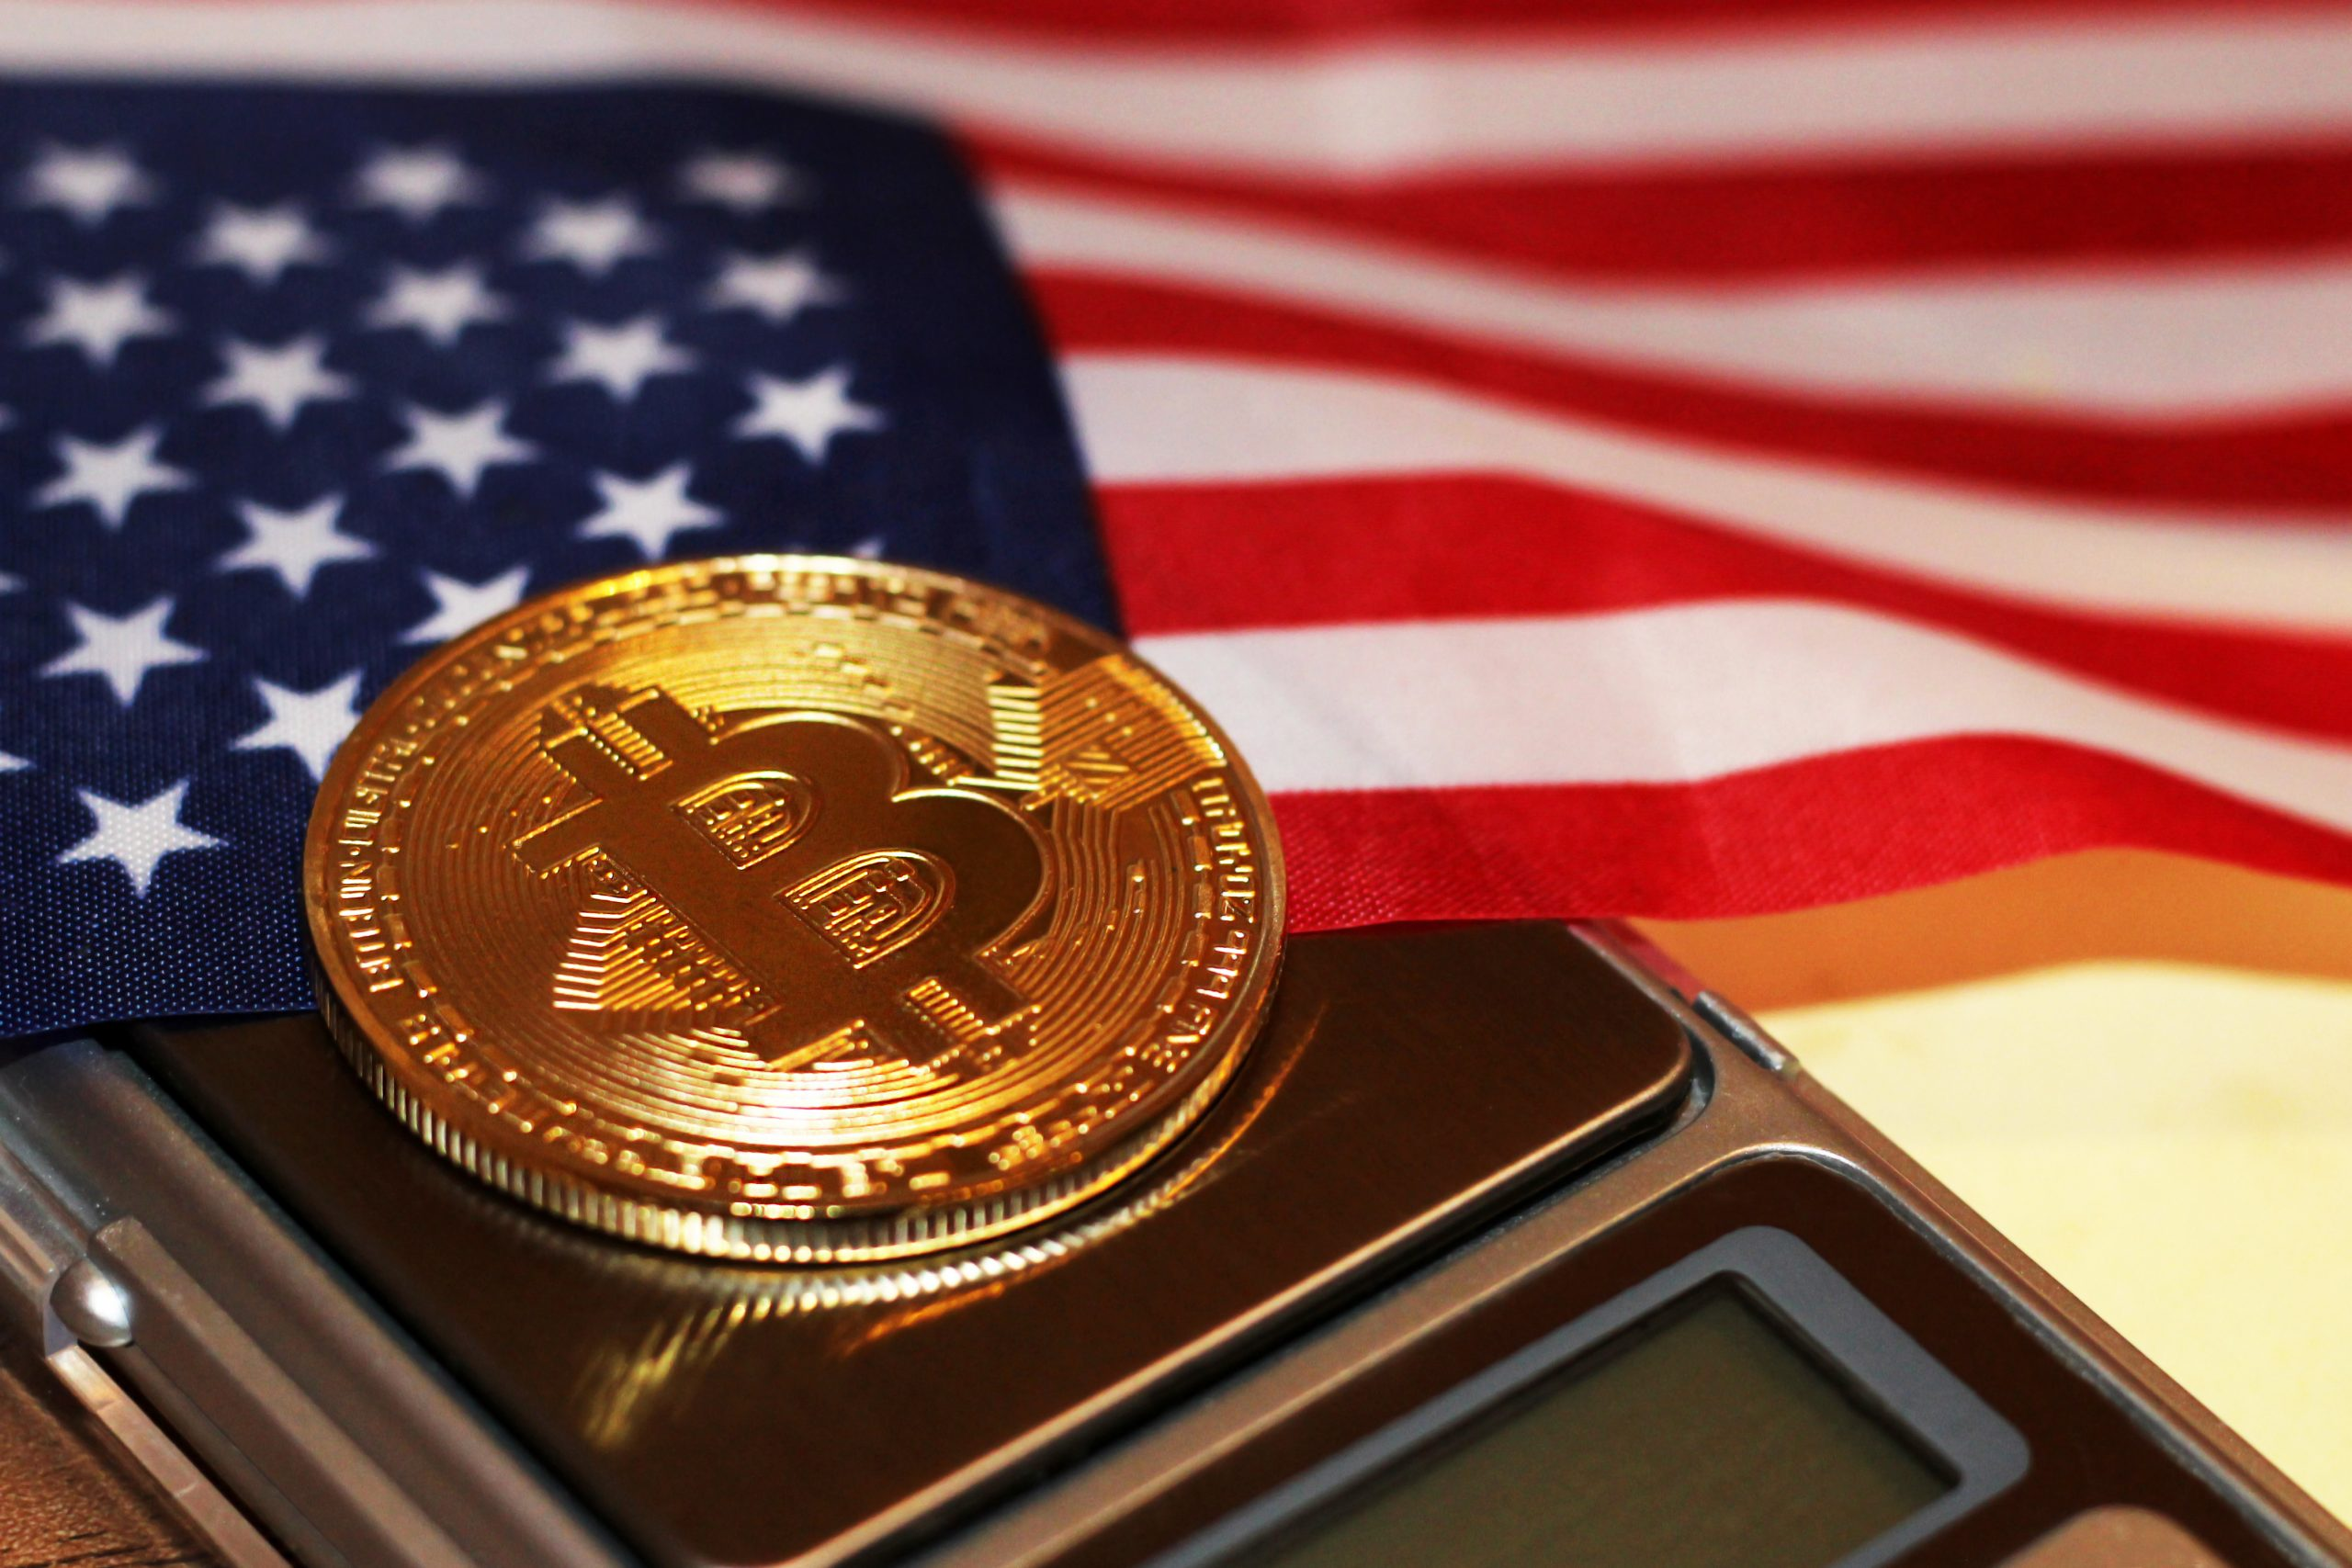 Yale And Fed Researchers Publish Document On Stablecoins Ahead Of Biden Admin Meeting Discussing Regulation